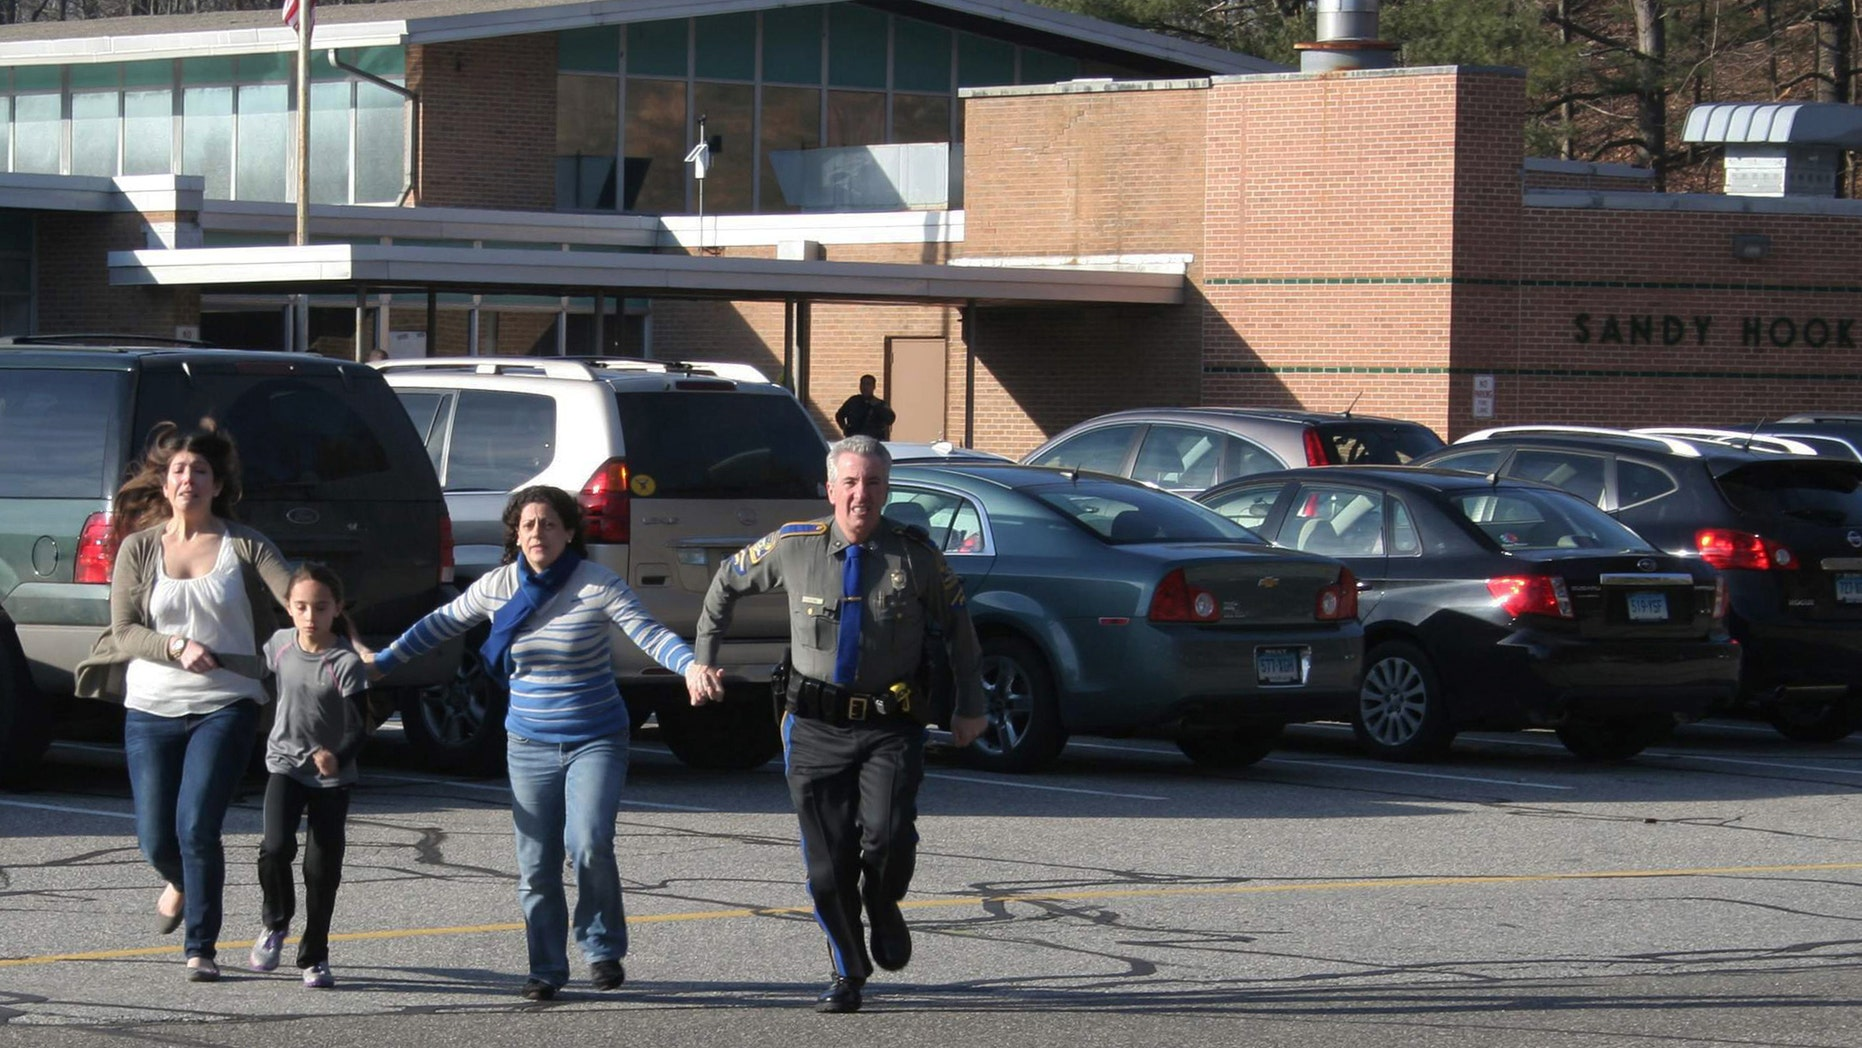 FILE - In this Friday, Dec. 14, 2012, file photo provided by the Newtown Bee, a police officer leads two women and a child from Sandy Hook Elementary School in Newtown, Conn., where a gunman opened fire, killing 26 people, including 20 children. A prosecutor is planning to release a report on the investigation into the massacre at Sandy Hook Elementary School on Monday, Nov. 25, 2013, but the public will have to wait longer for the Connecticut state policeâs full accounting of the crime.(AP Photo/Newtown Bee, Shannon Hicks, File) MANDATORY CREDIT: NEWTOWN BEE, SHANNON HICKS